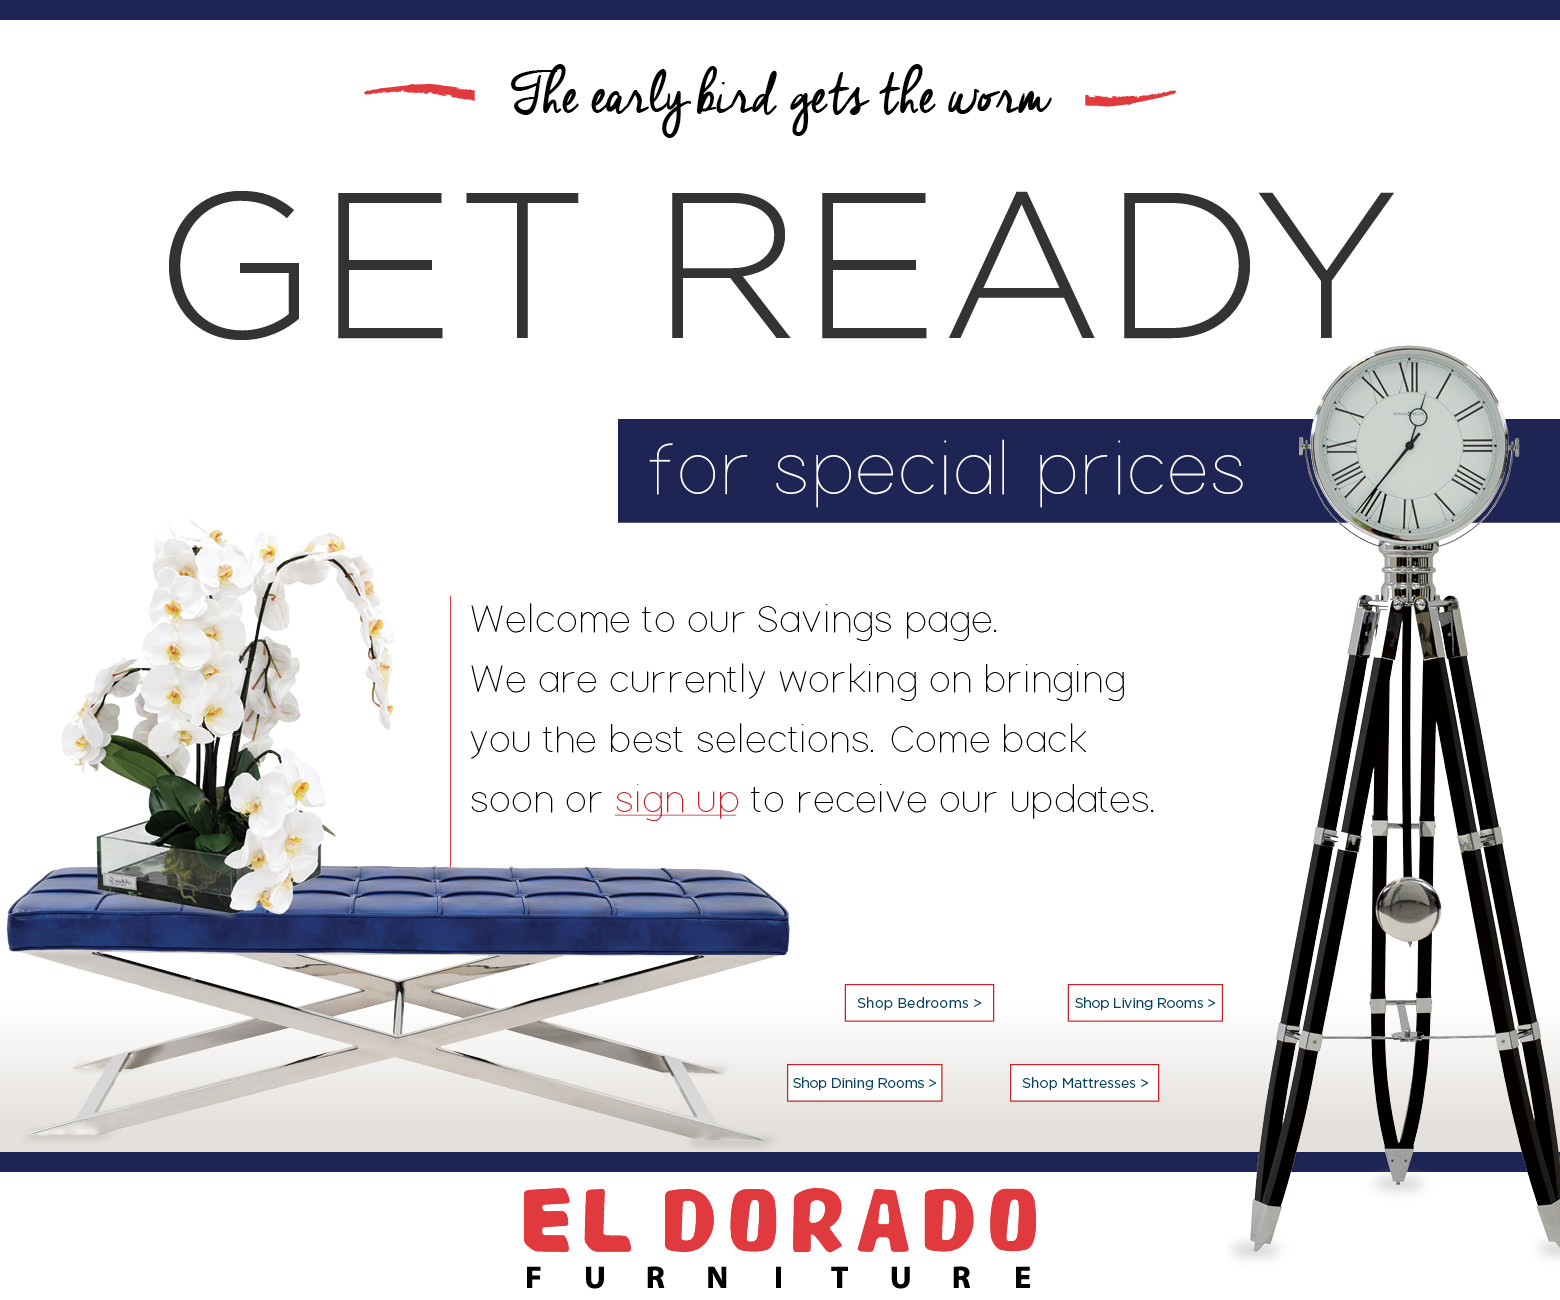 Offers El Dorado Furniture